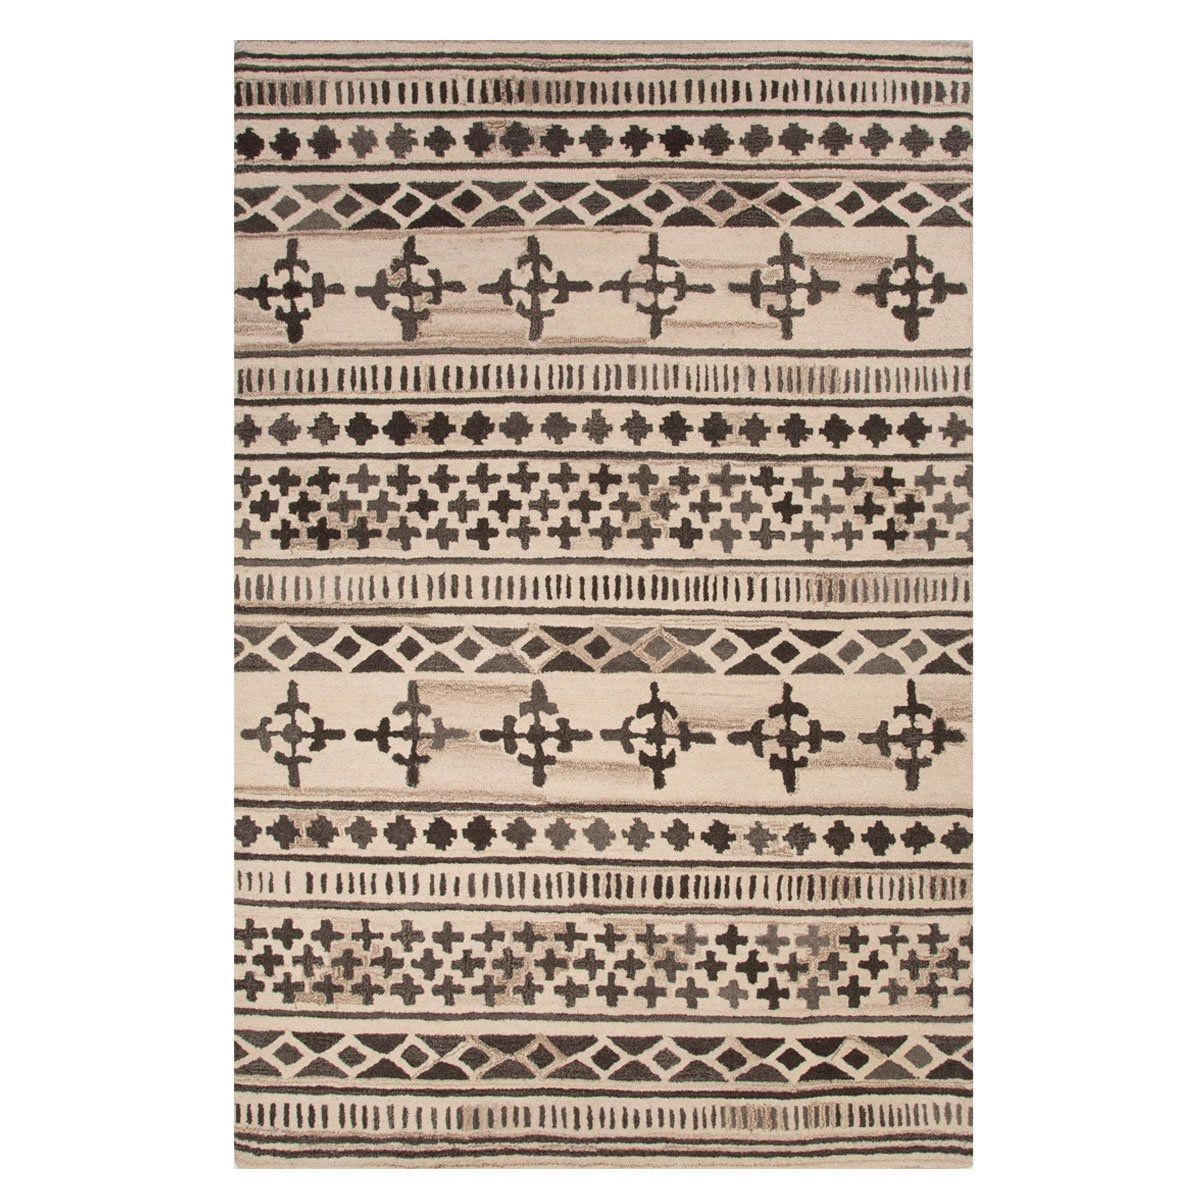 Hand Tufted Wool Area Rug Trnk Intended For Wool Area Rugs (#6 of 15)